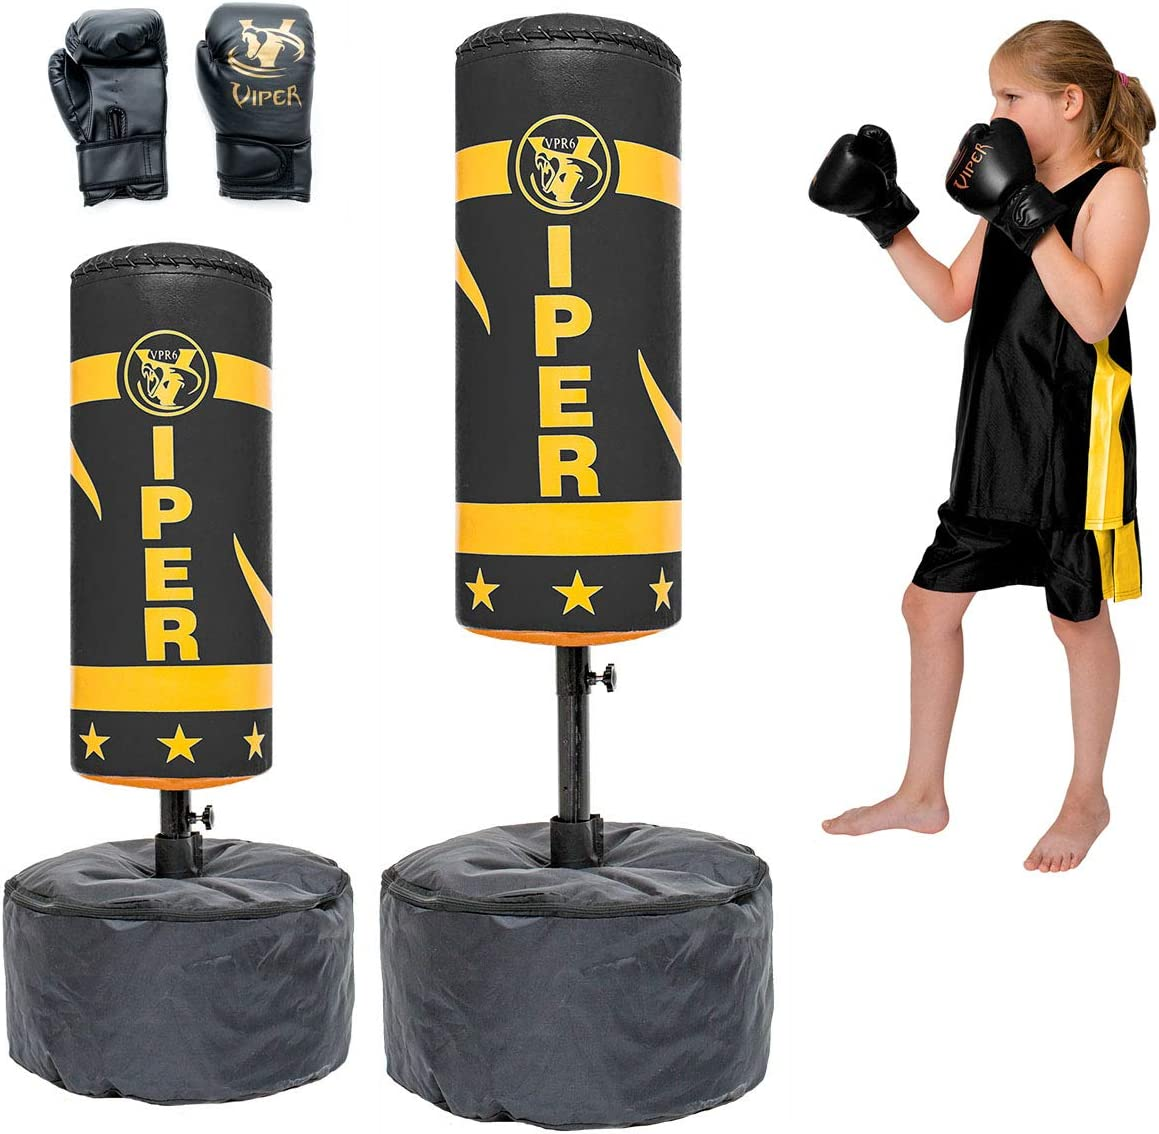 VIPER Freestanding Punch Bag Ball and Gloves MMA Kick Boxing Set